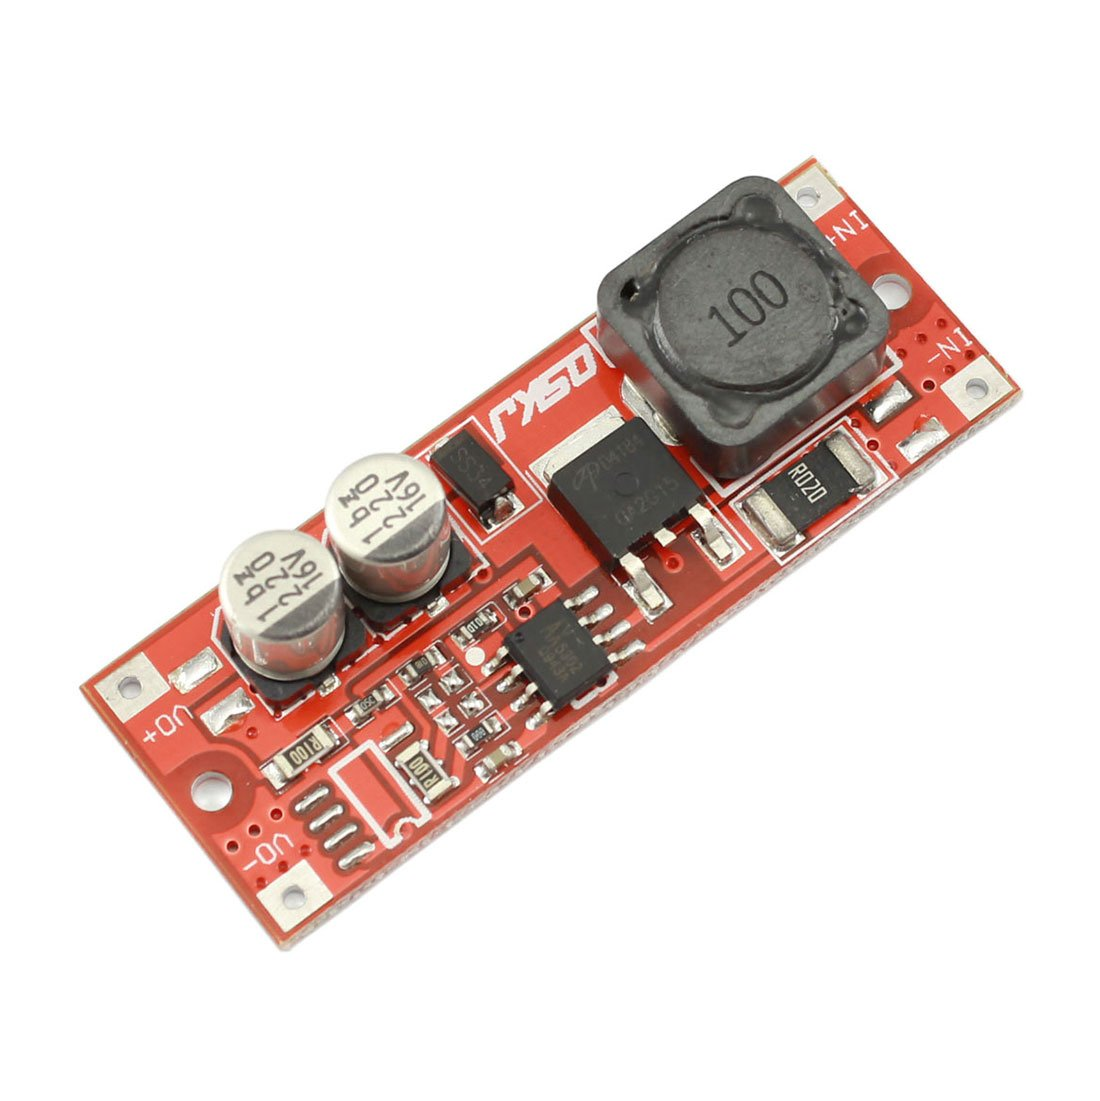 Ailavi Dc Boost Converter 3v 12v To Fixed Voltage Usb 5v Dcdc Stepup Circuit Step Up Mobile Power Supply Module 12w Home Audio Theater